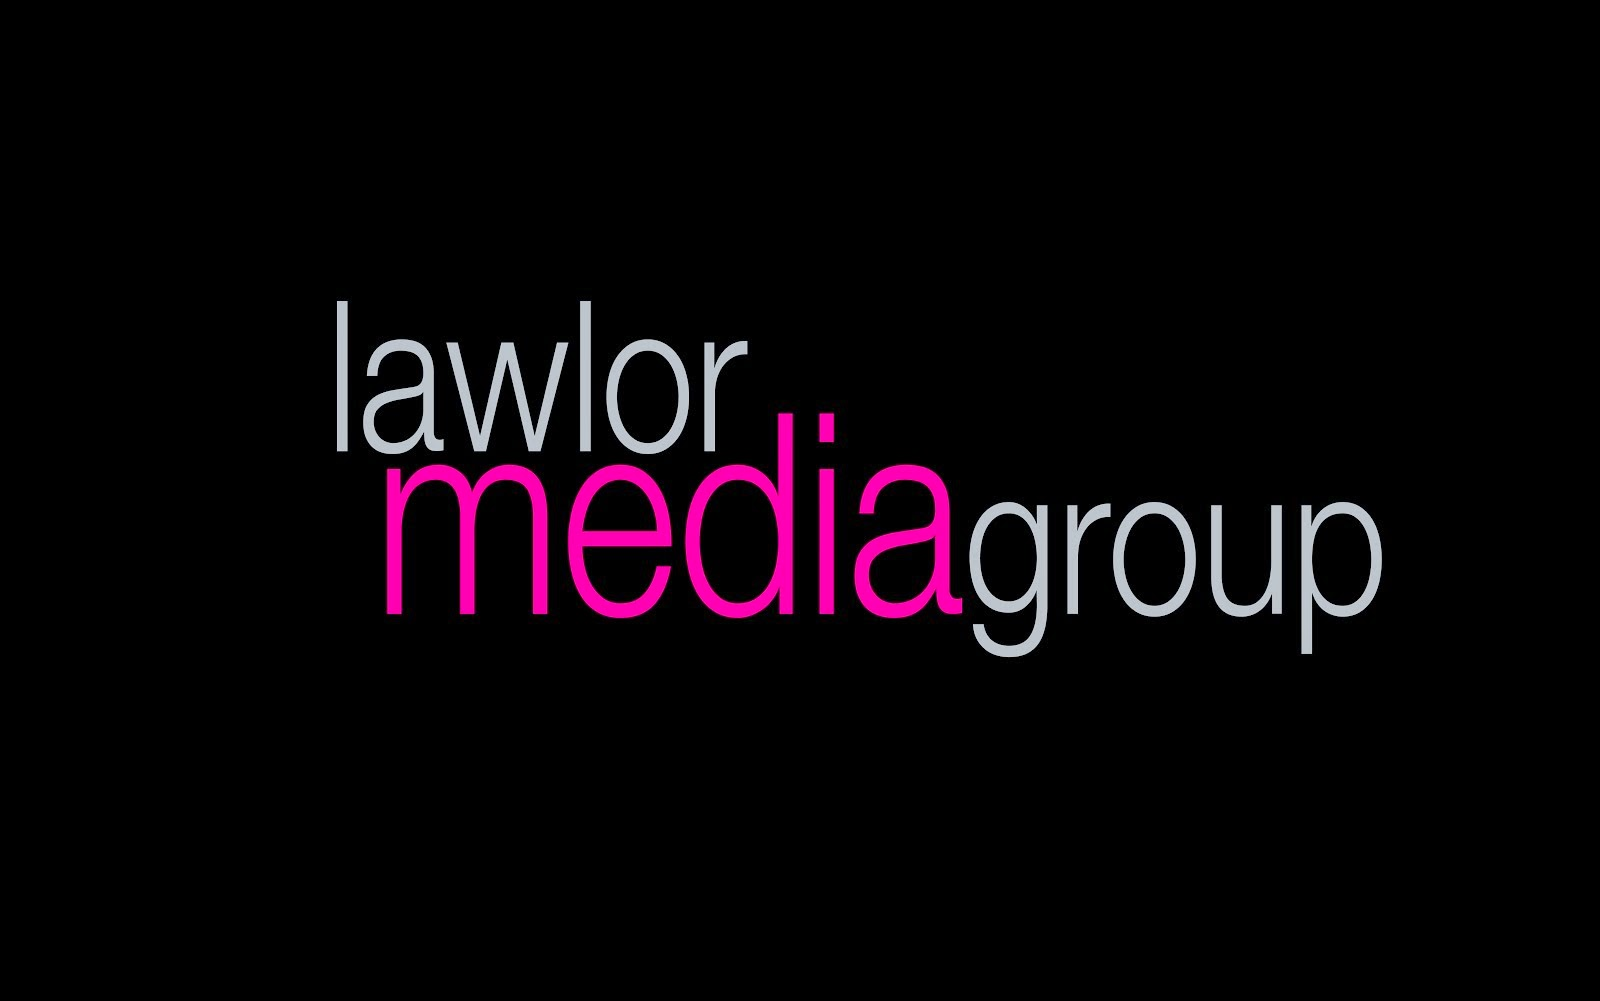 Lawlor Media Group